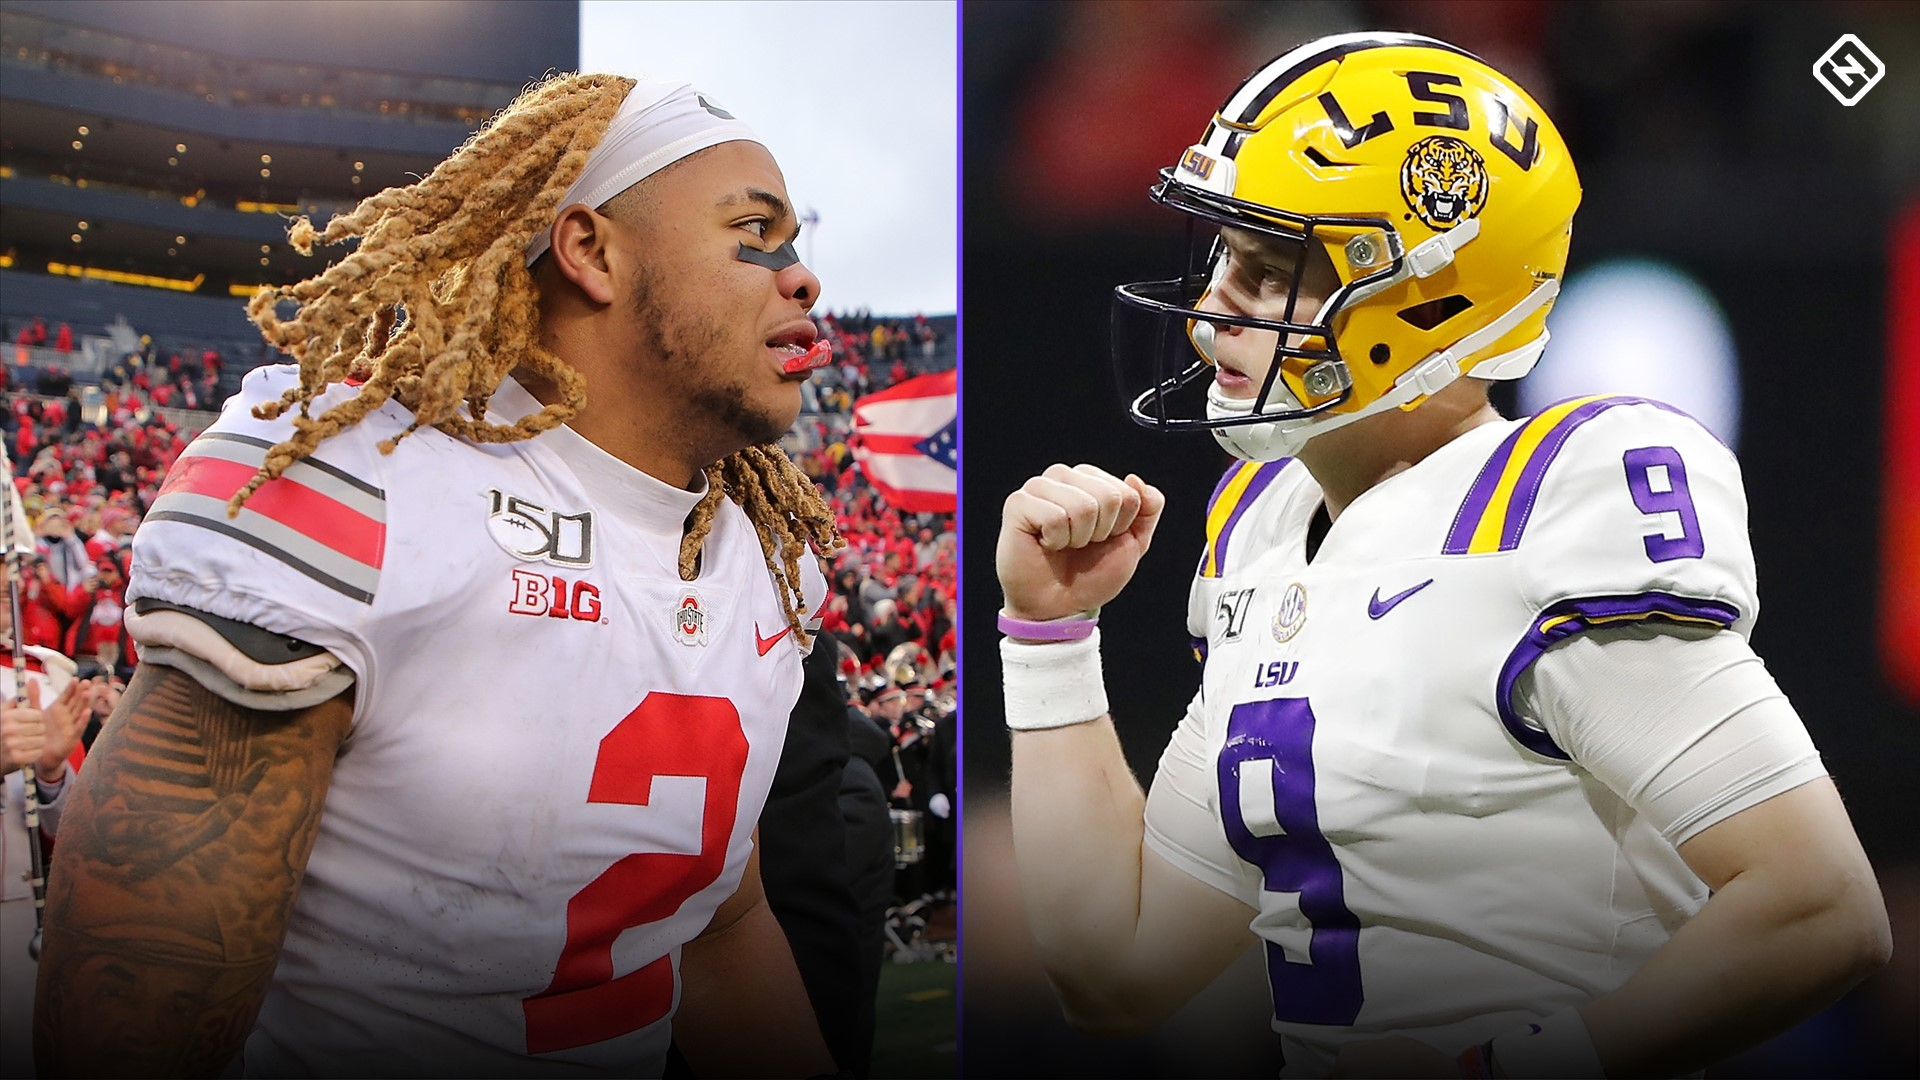 The College Football Playoff debate: Should LSU or Ohio State be No. 1?